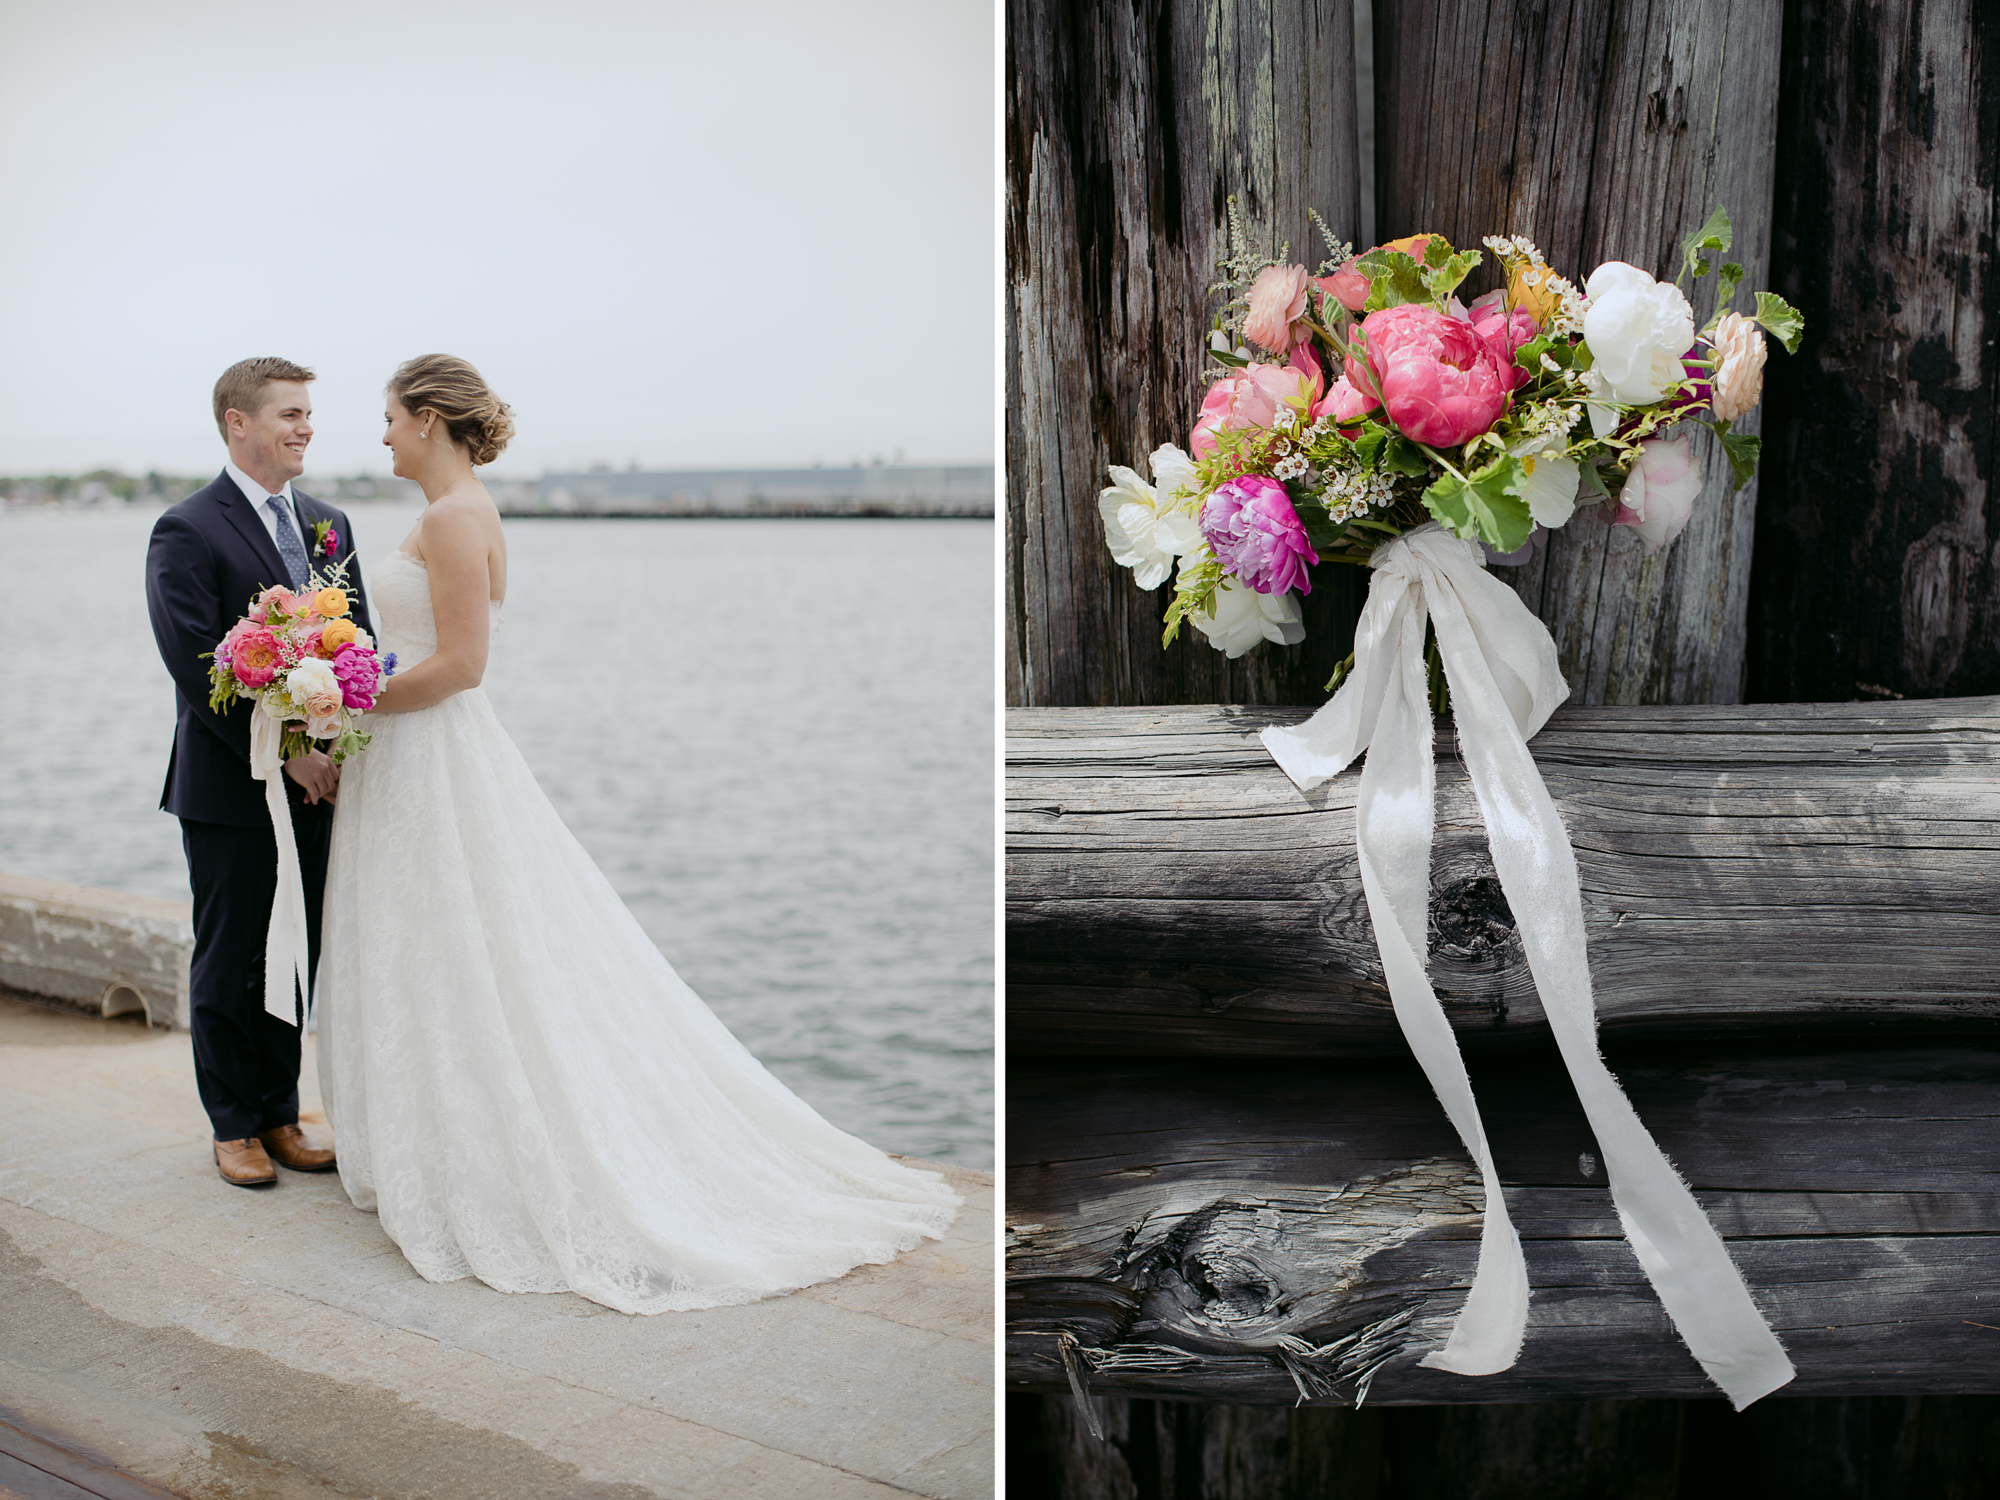 Kara_Jamie_Ocean_gateway_wedding_portland_maine_018.jpg